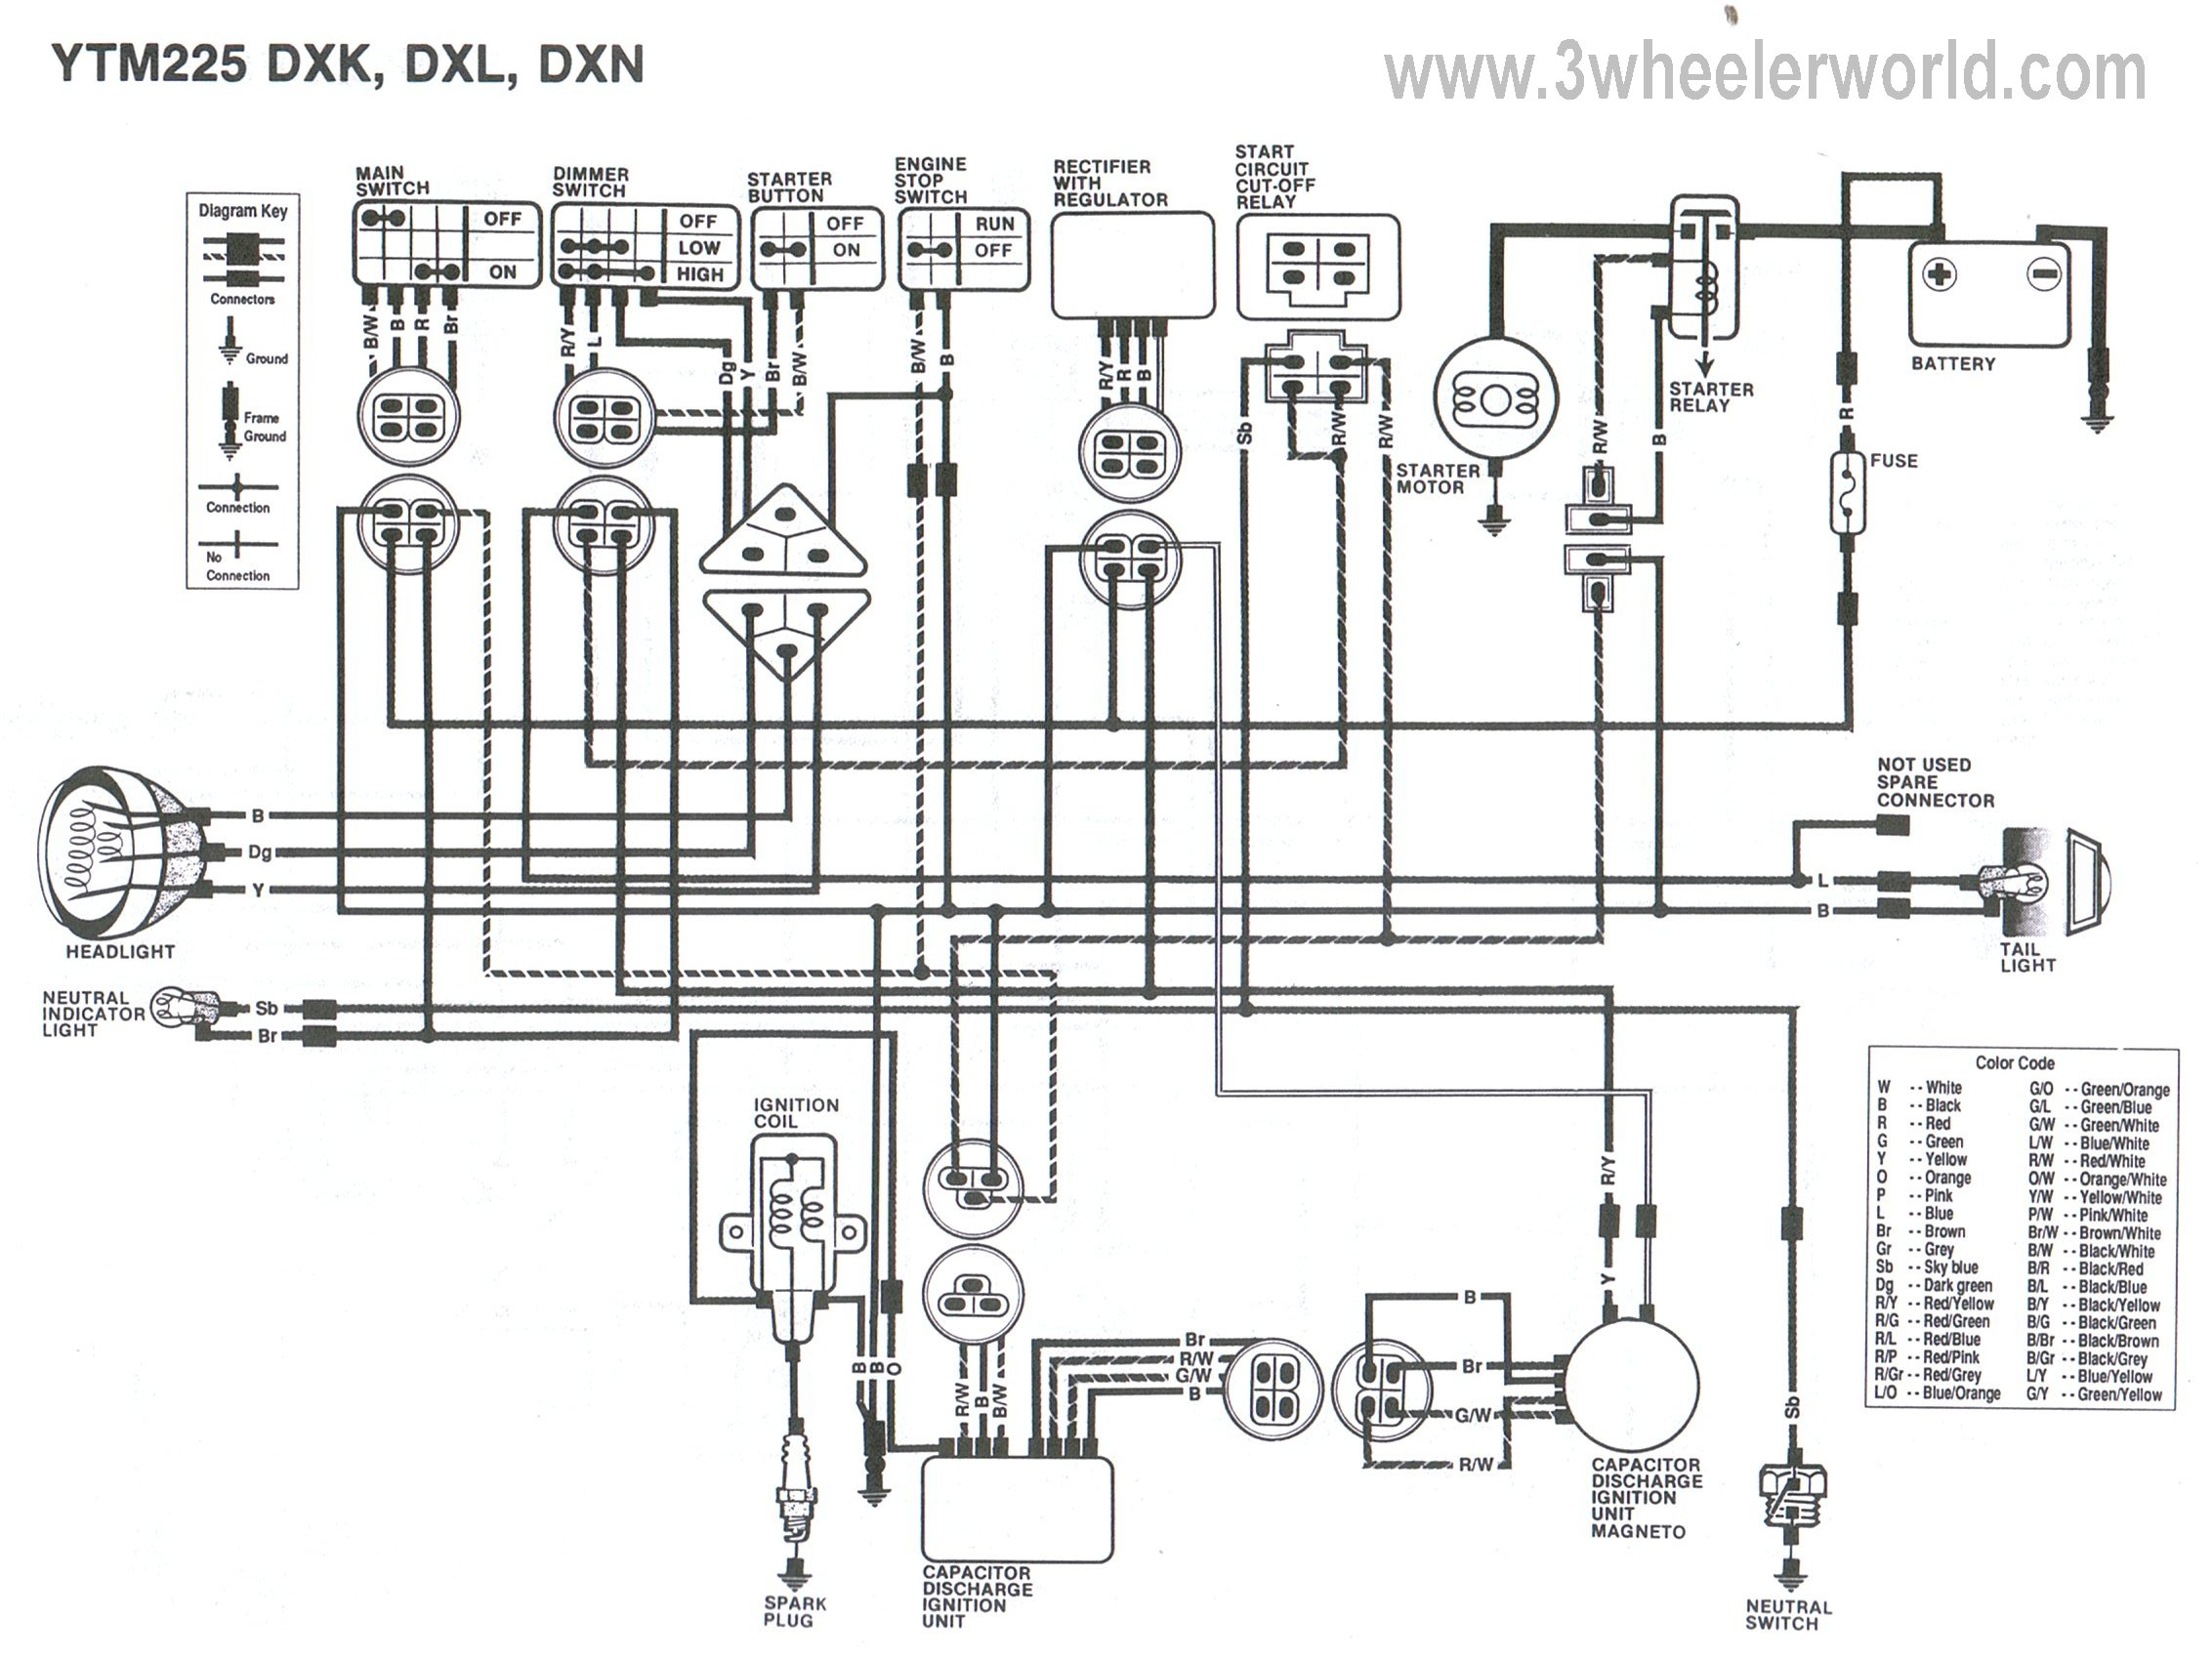 YTM225DXKDXLDXN Big Bear Cdi Wiring Diagram on ac 6 wire, chinese quad, yamaha banshee, yamaha scooter 6 pin,